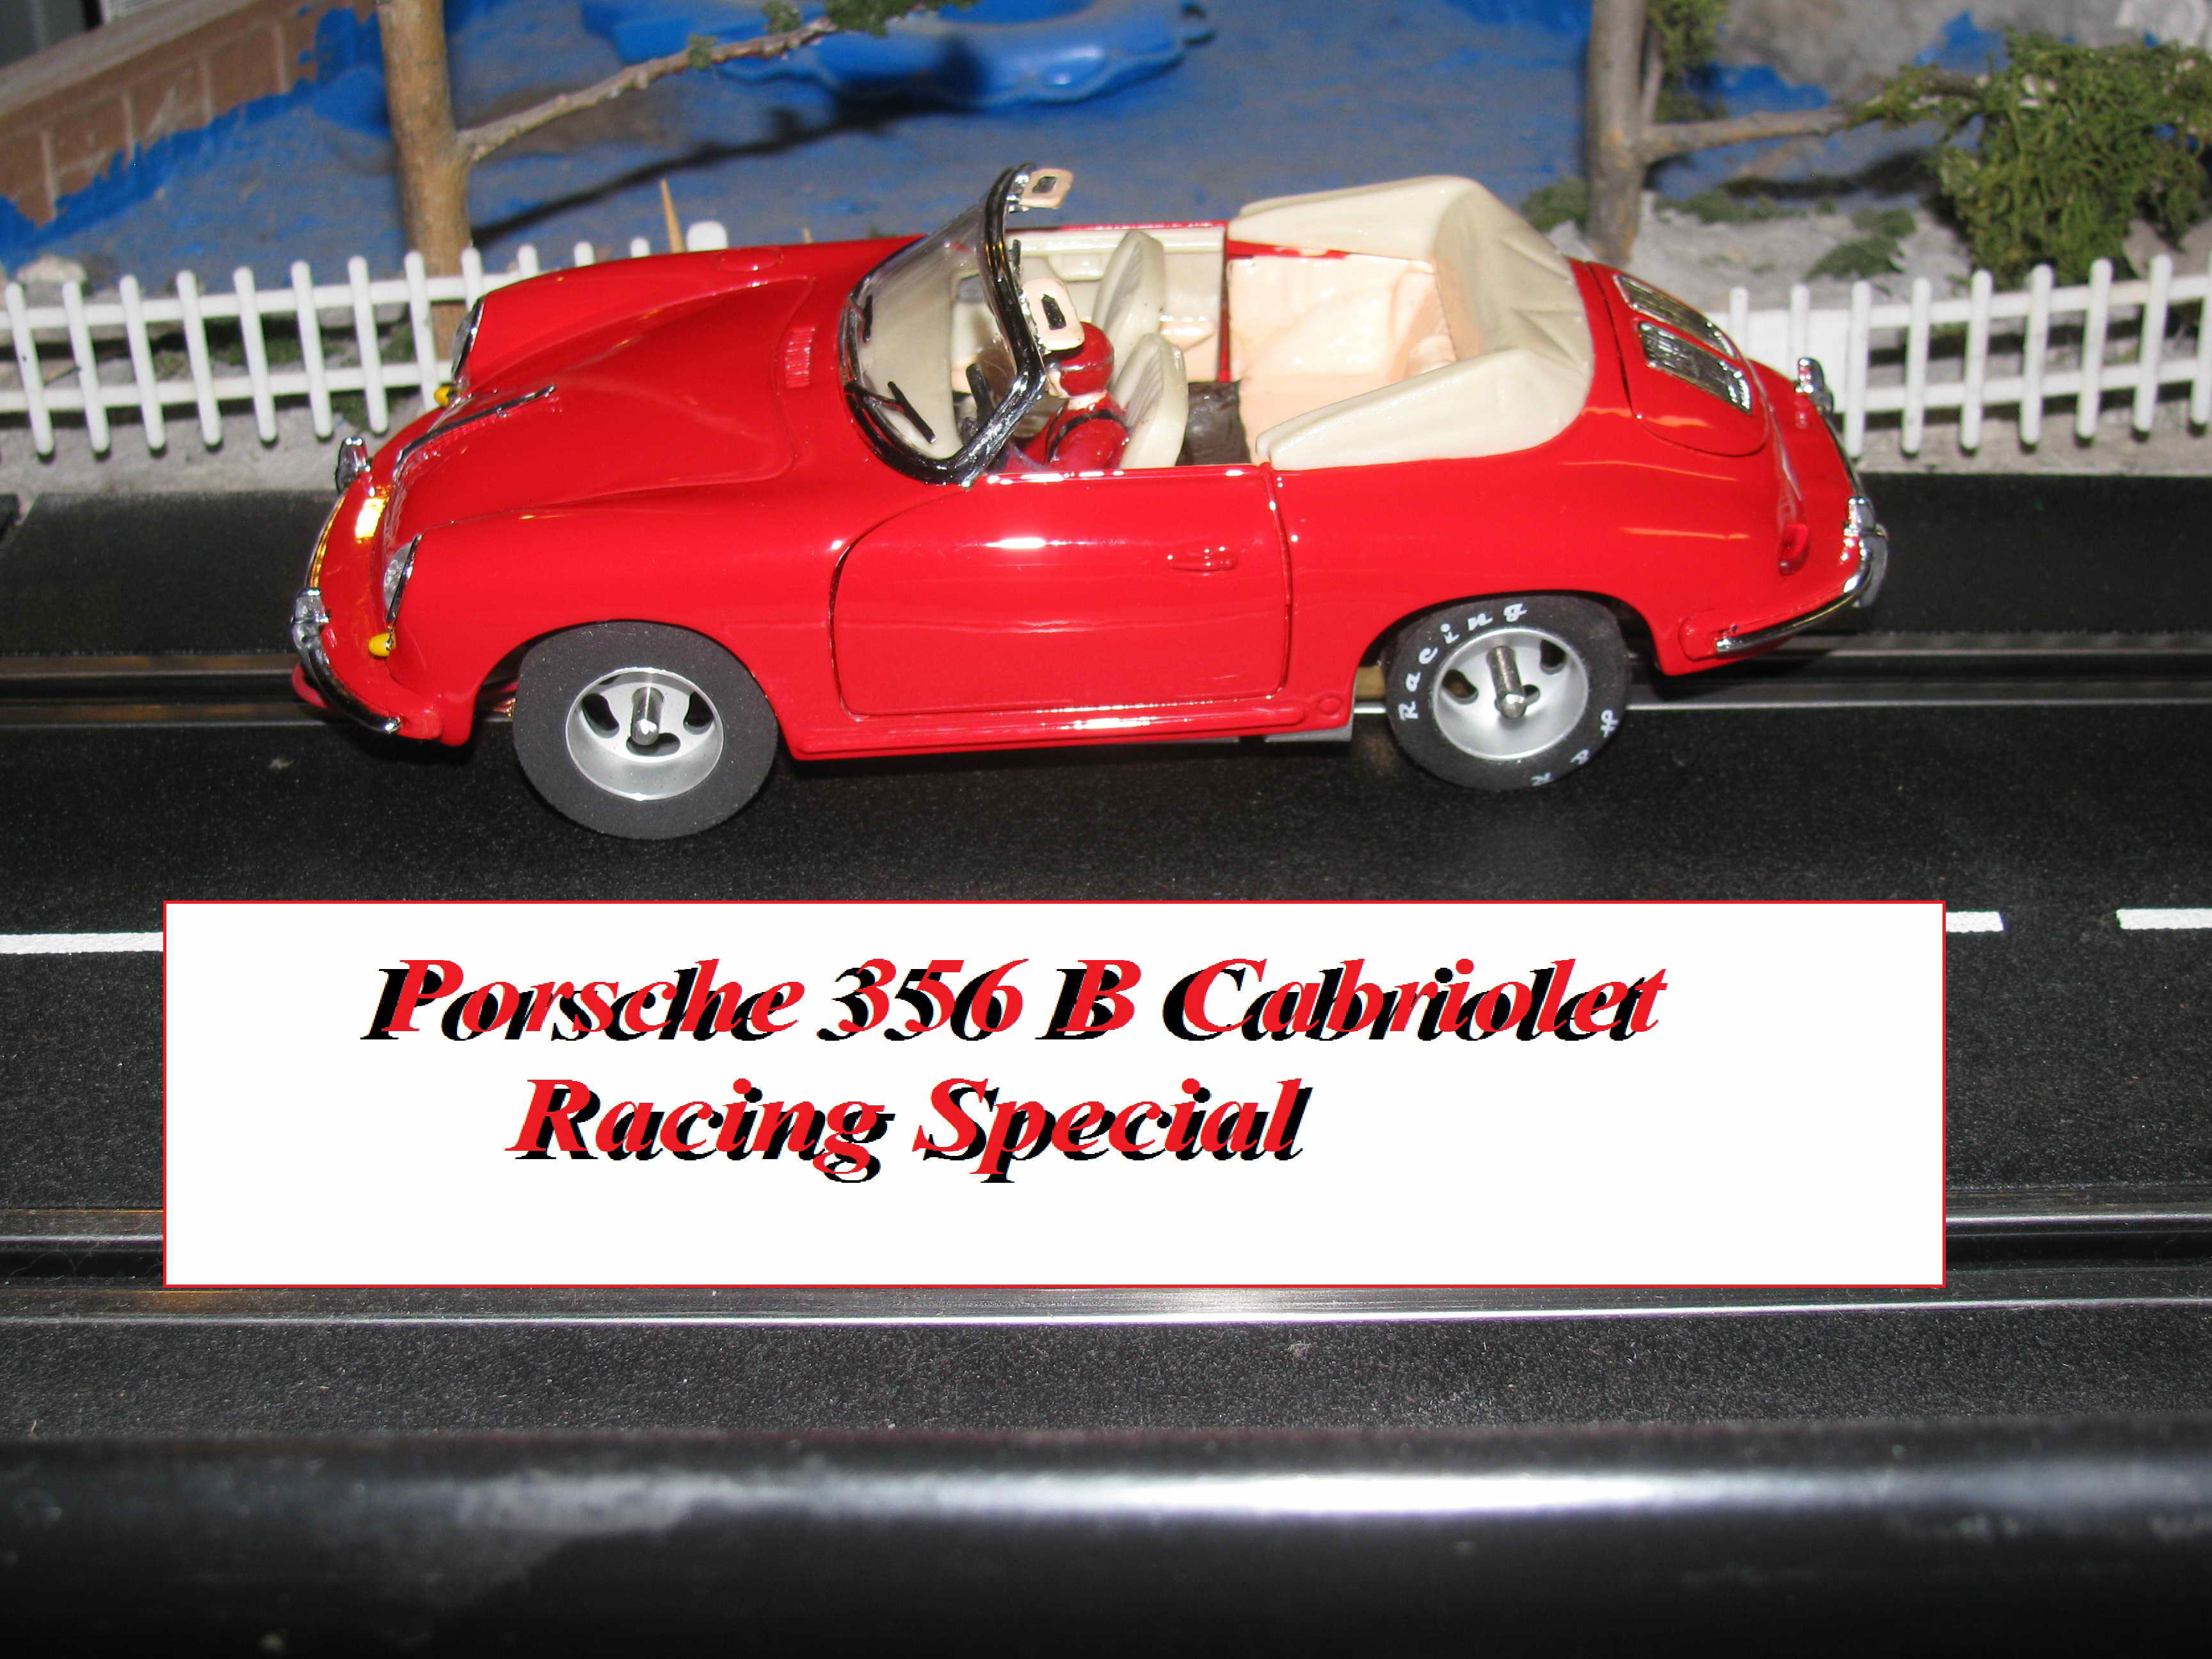 * Winter is coming SALE * Porsche 356 B Cabriolet Custom Slot Car Racer with many Modifications 1/24 Scale